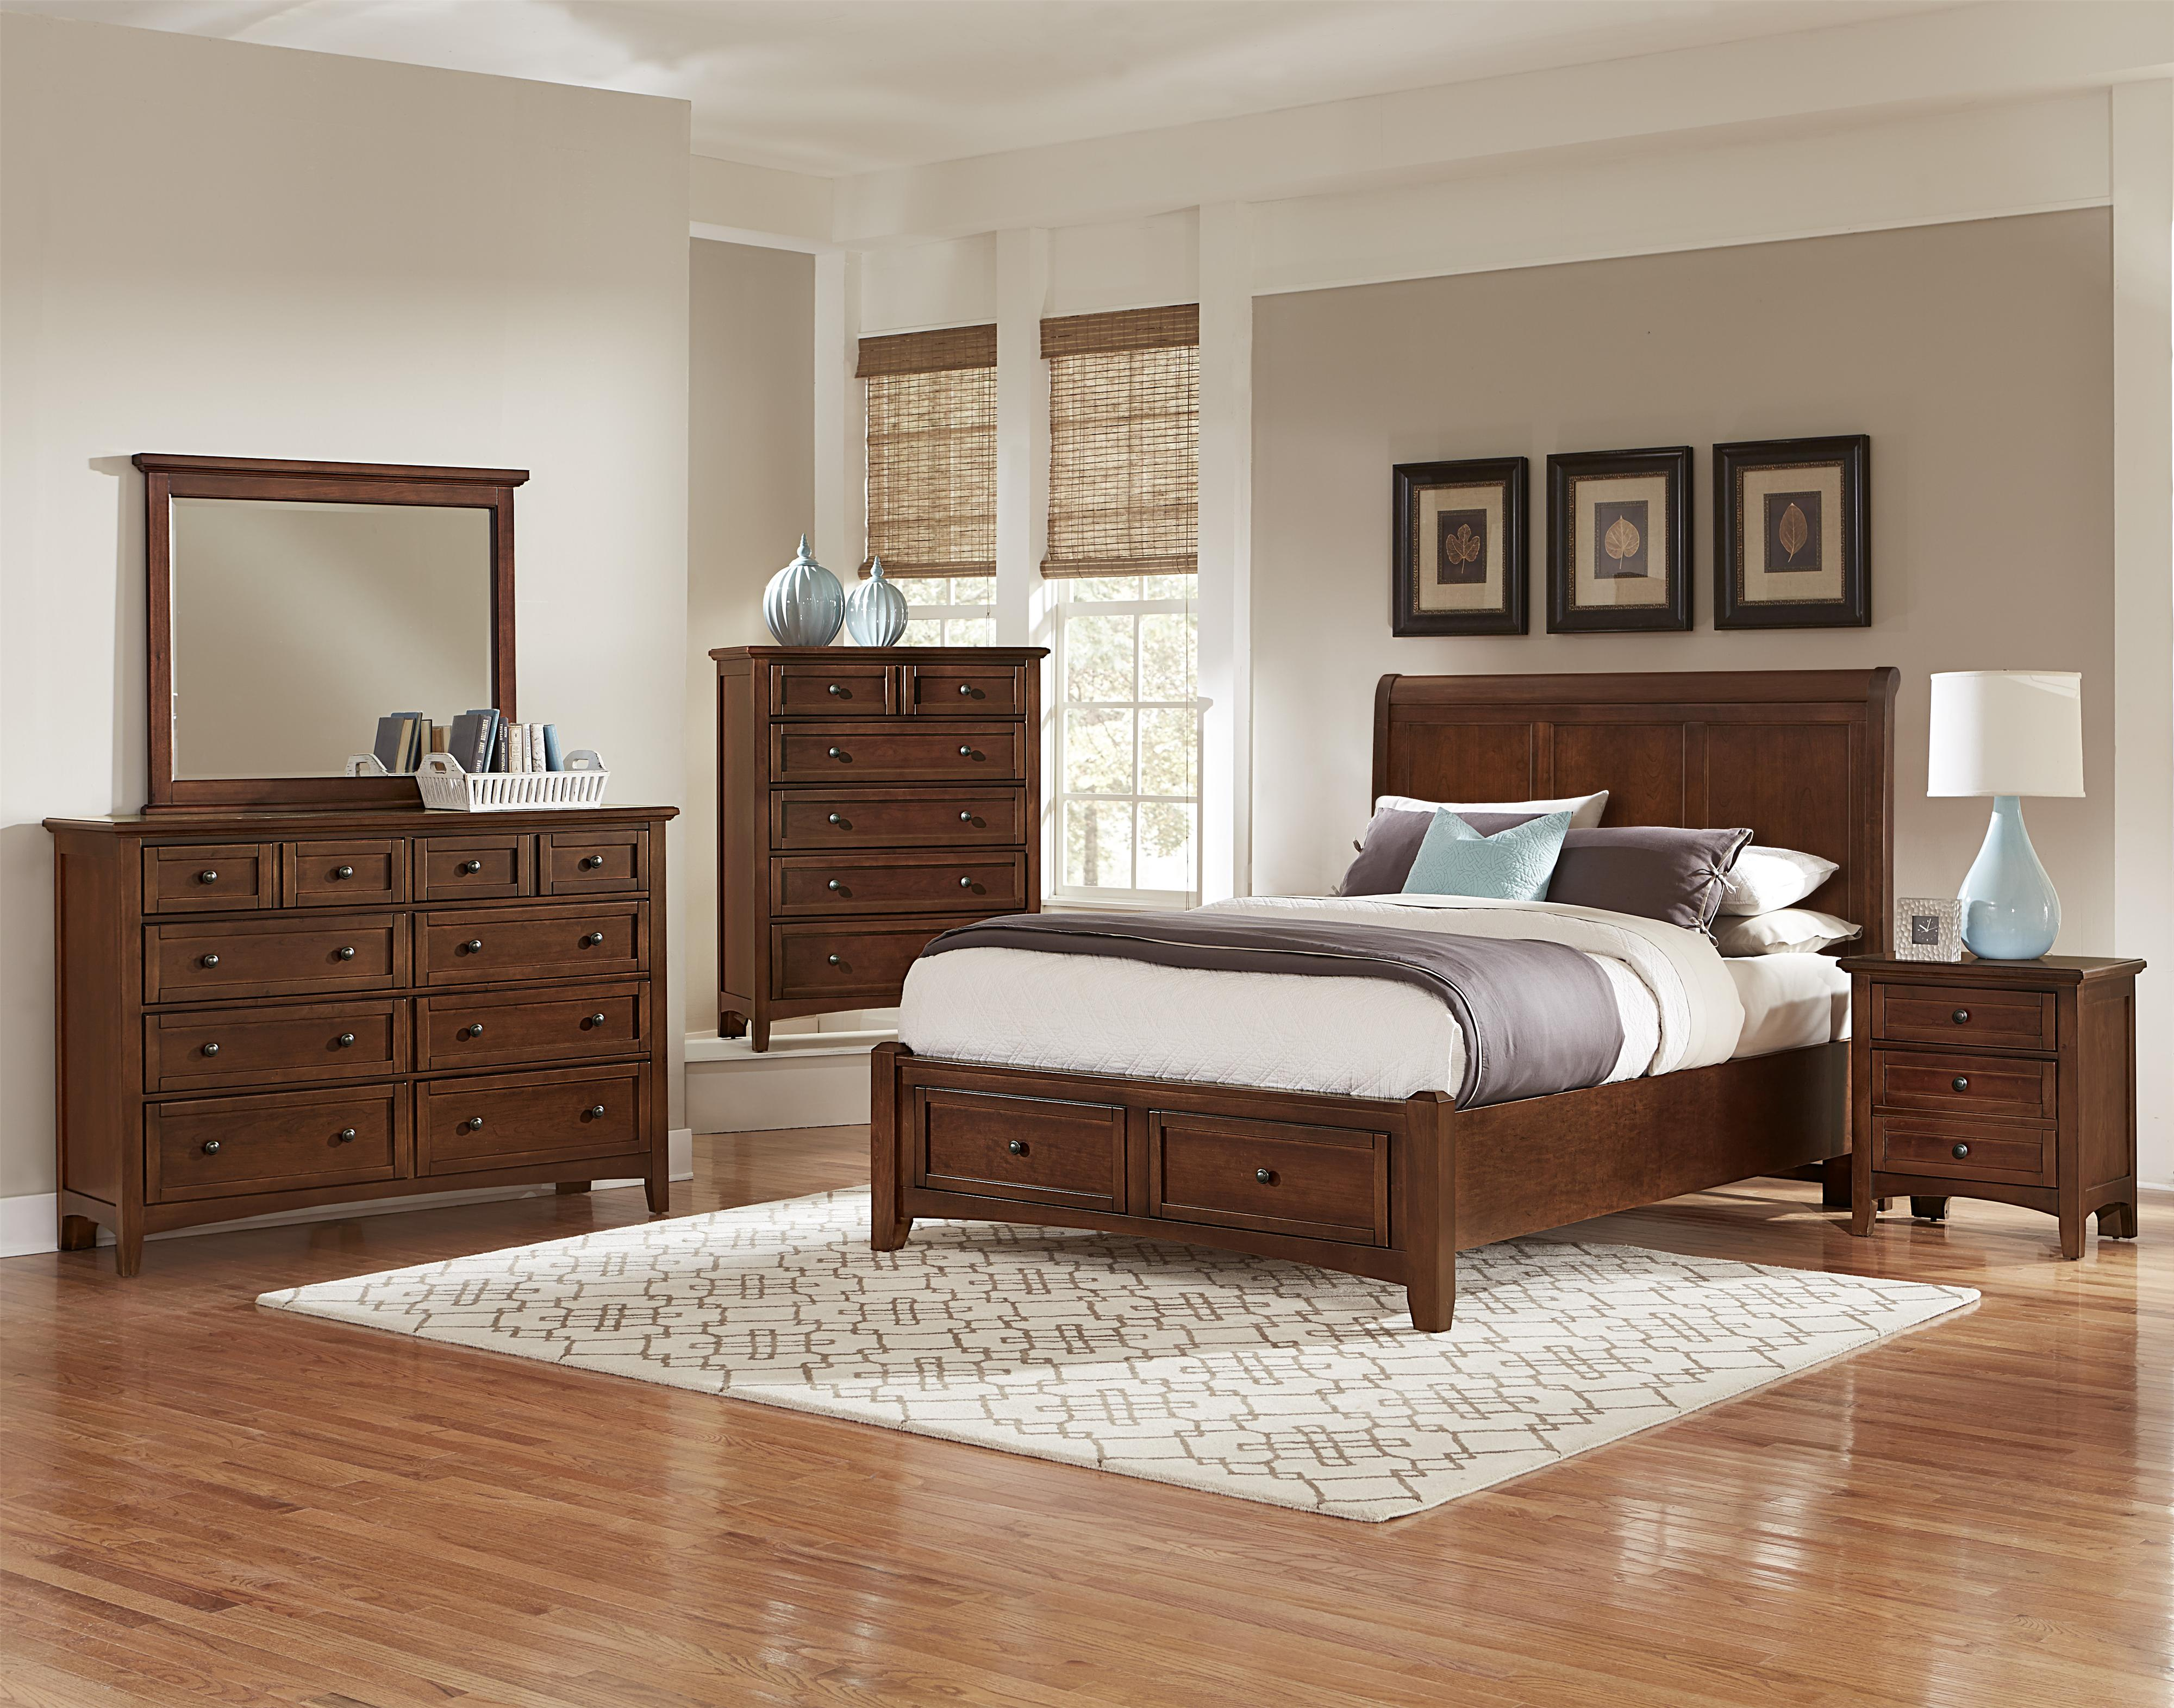 Bonanza Full Bedroom Group by Vaughan Bassett at Northeast Factory Direct